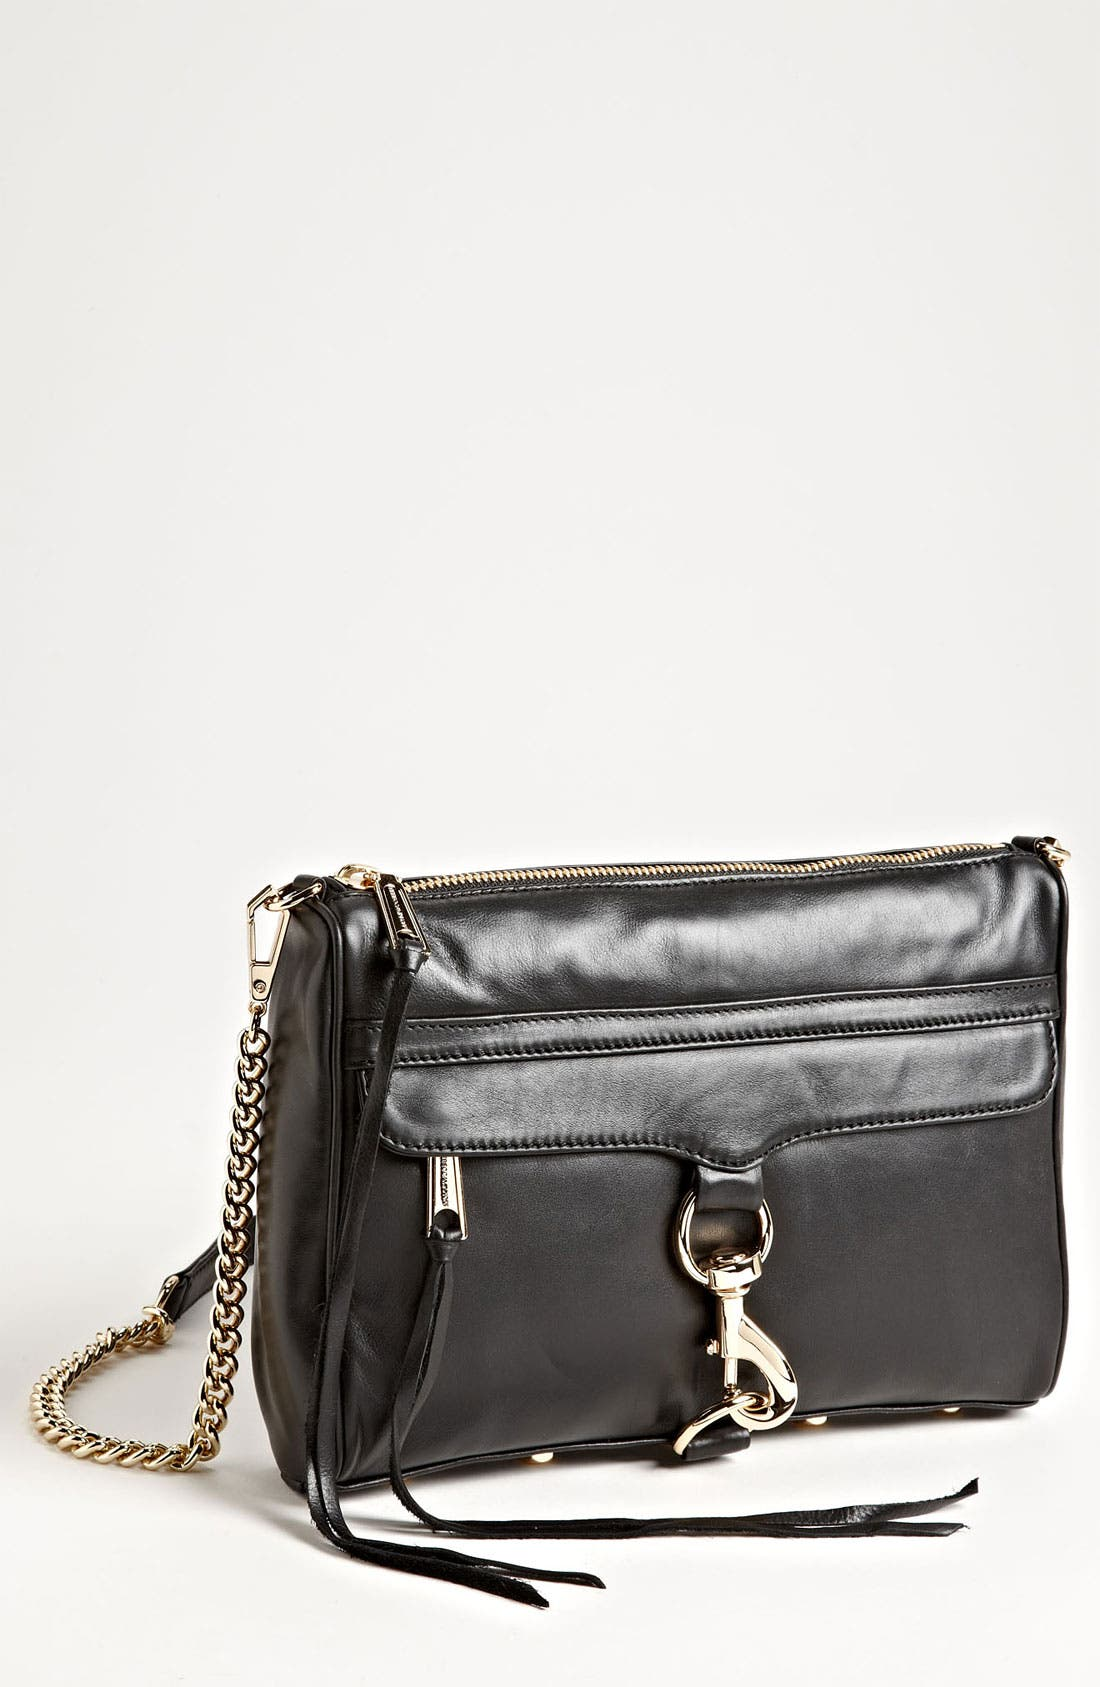 'MAC' Convertible Crossbody Bag,                         Main,                         color, Black